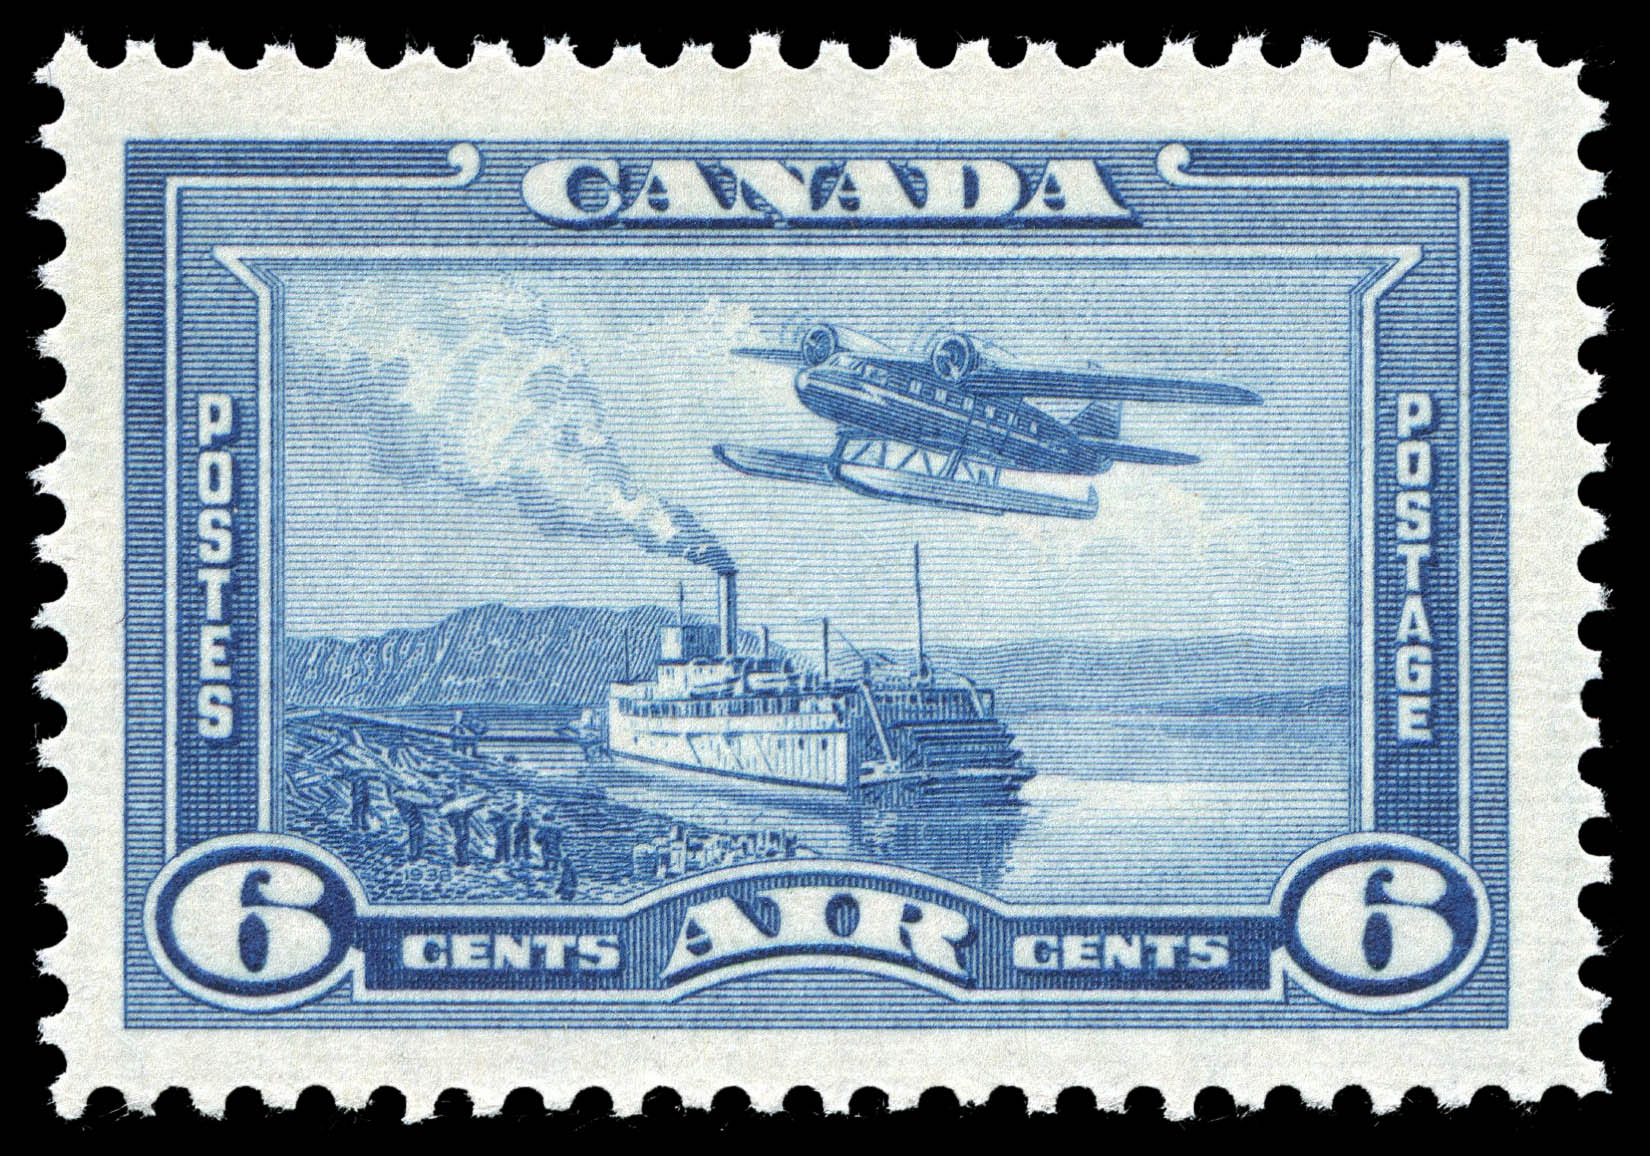 Mackenzie River, Northwest Territories, Air Canada Postage Stamp